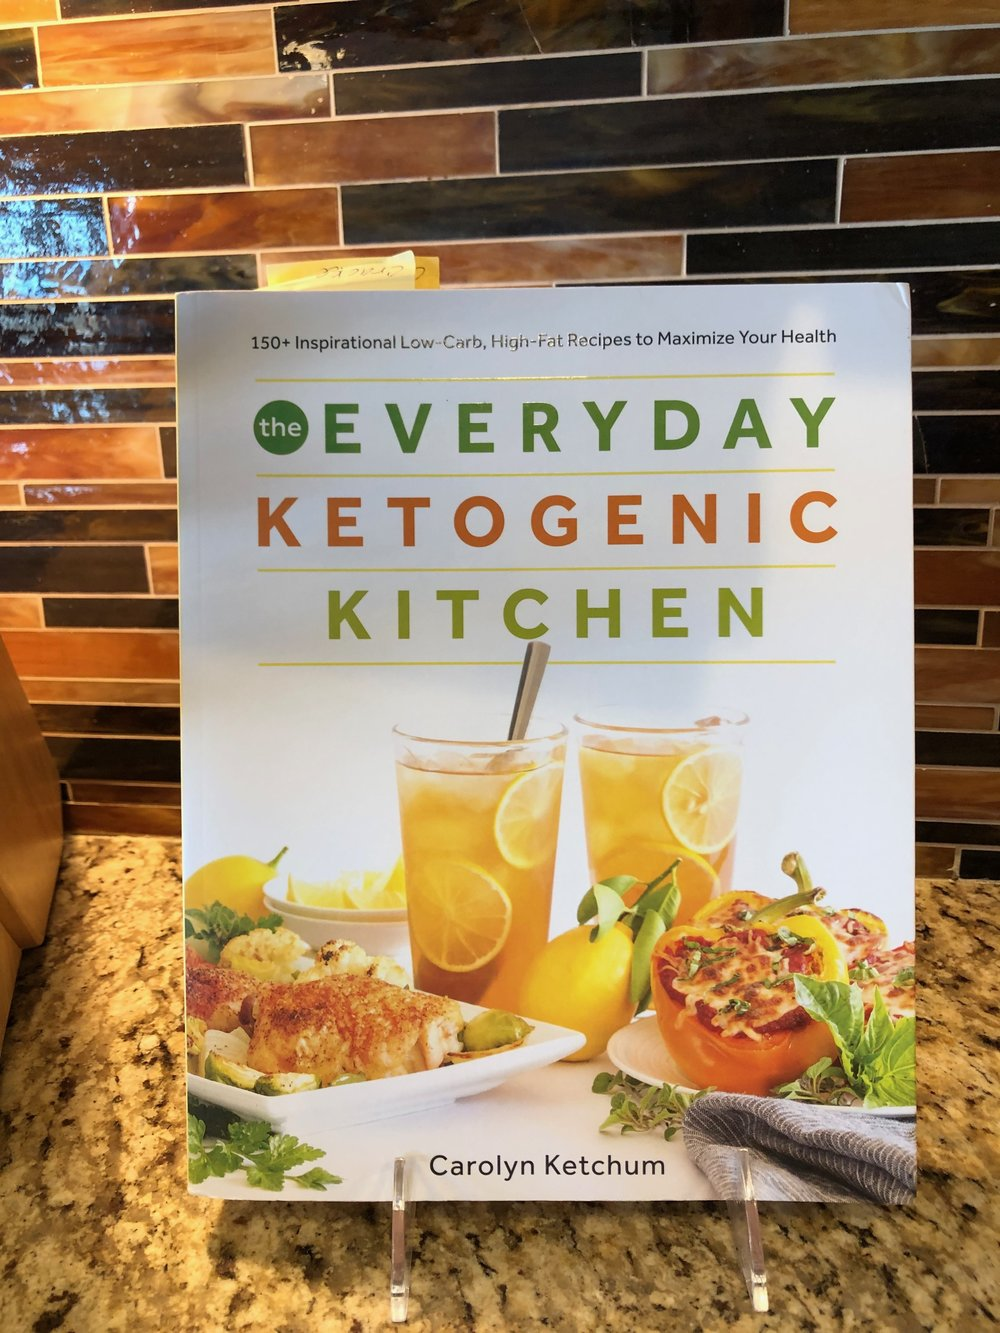 Carolyn Ketchum cookbook keto recipes everyday ketogenic living